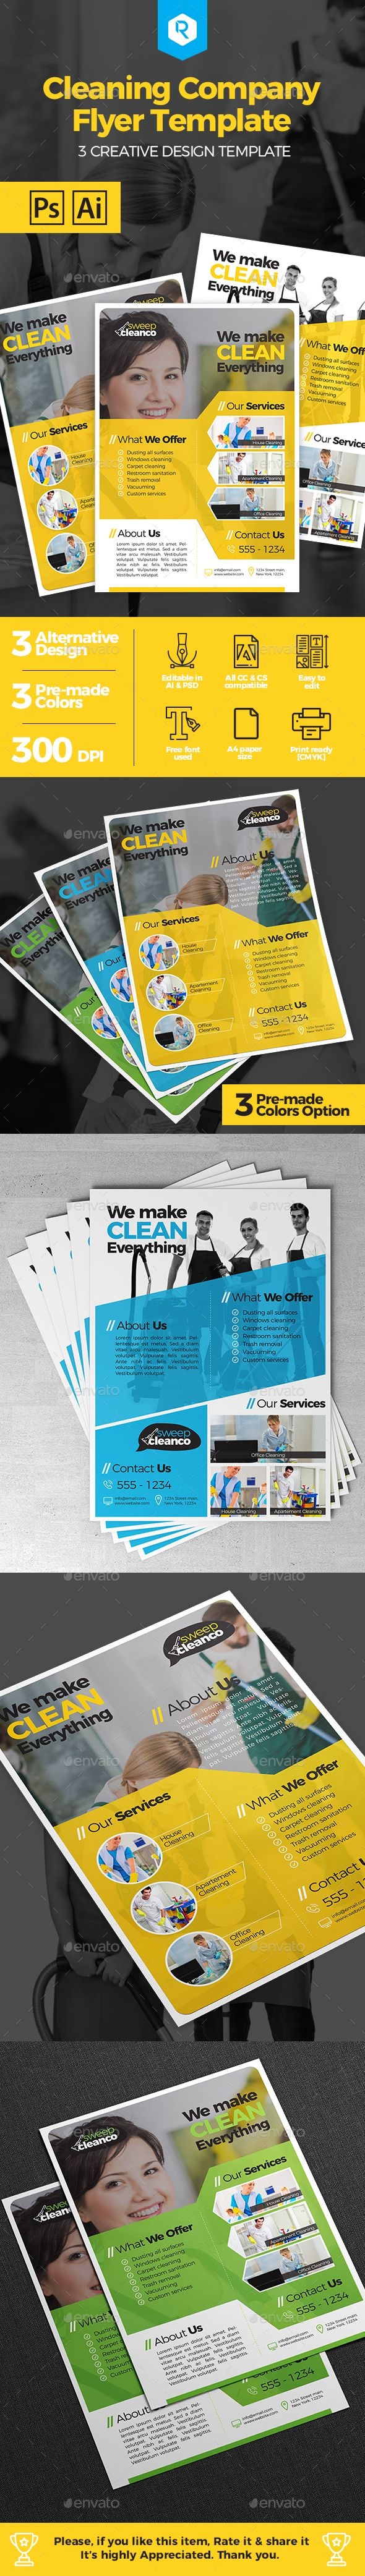 best ideas about cleaning services company cleaning company flyer template psd vector eps ai illustrator